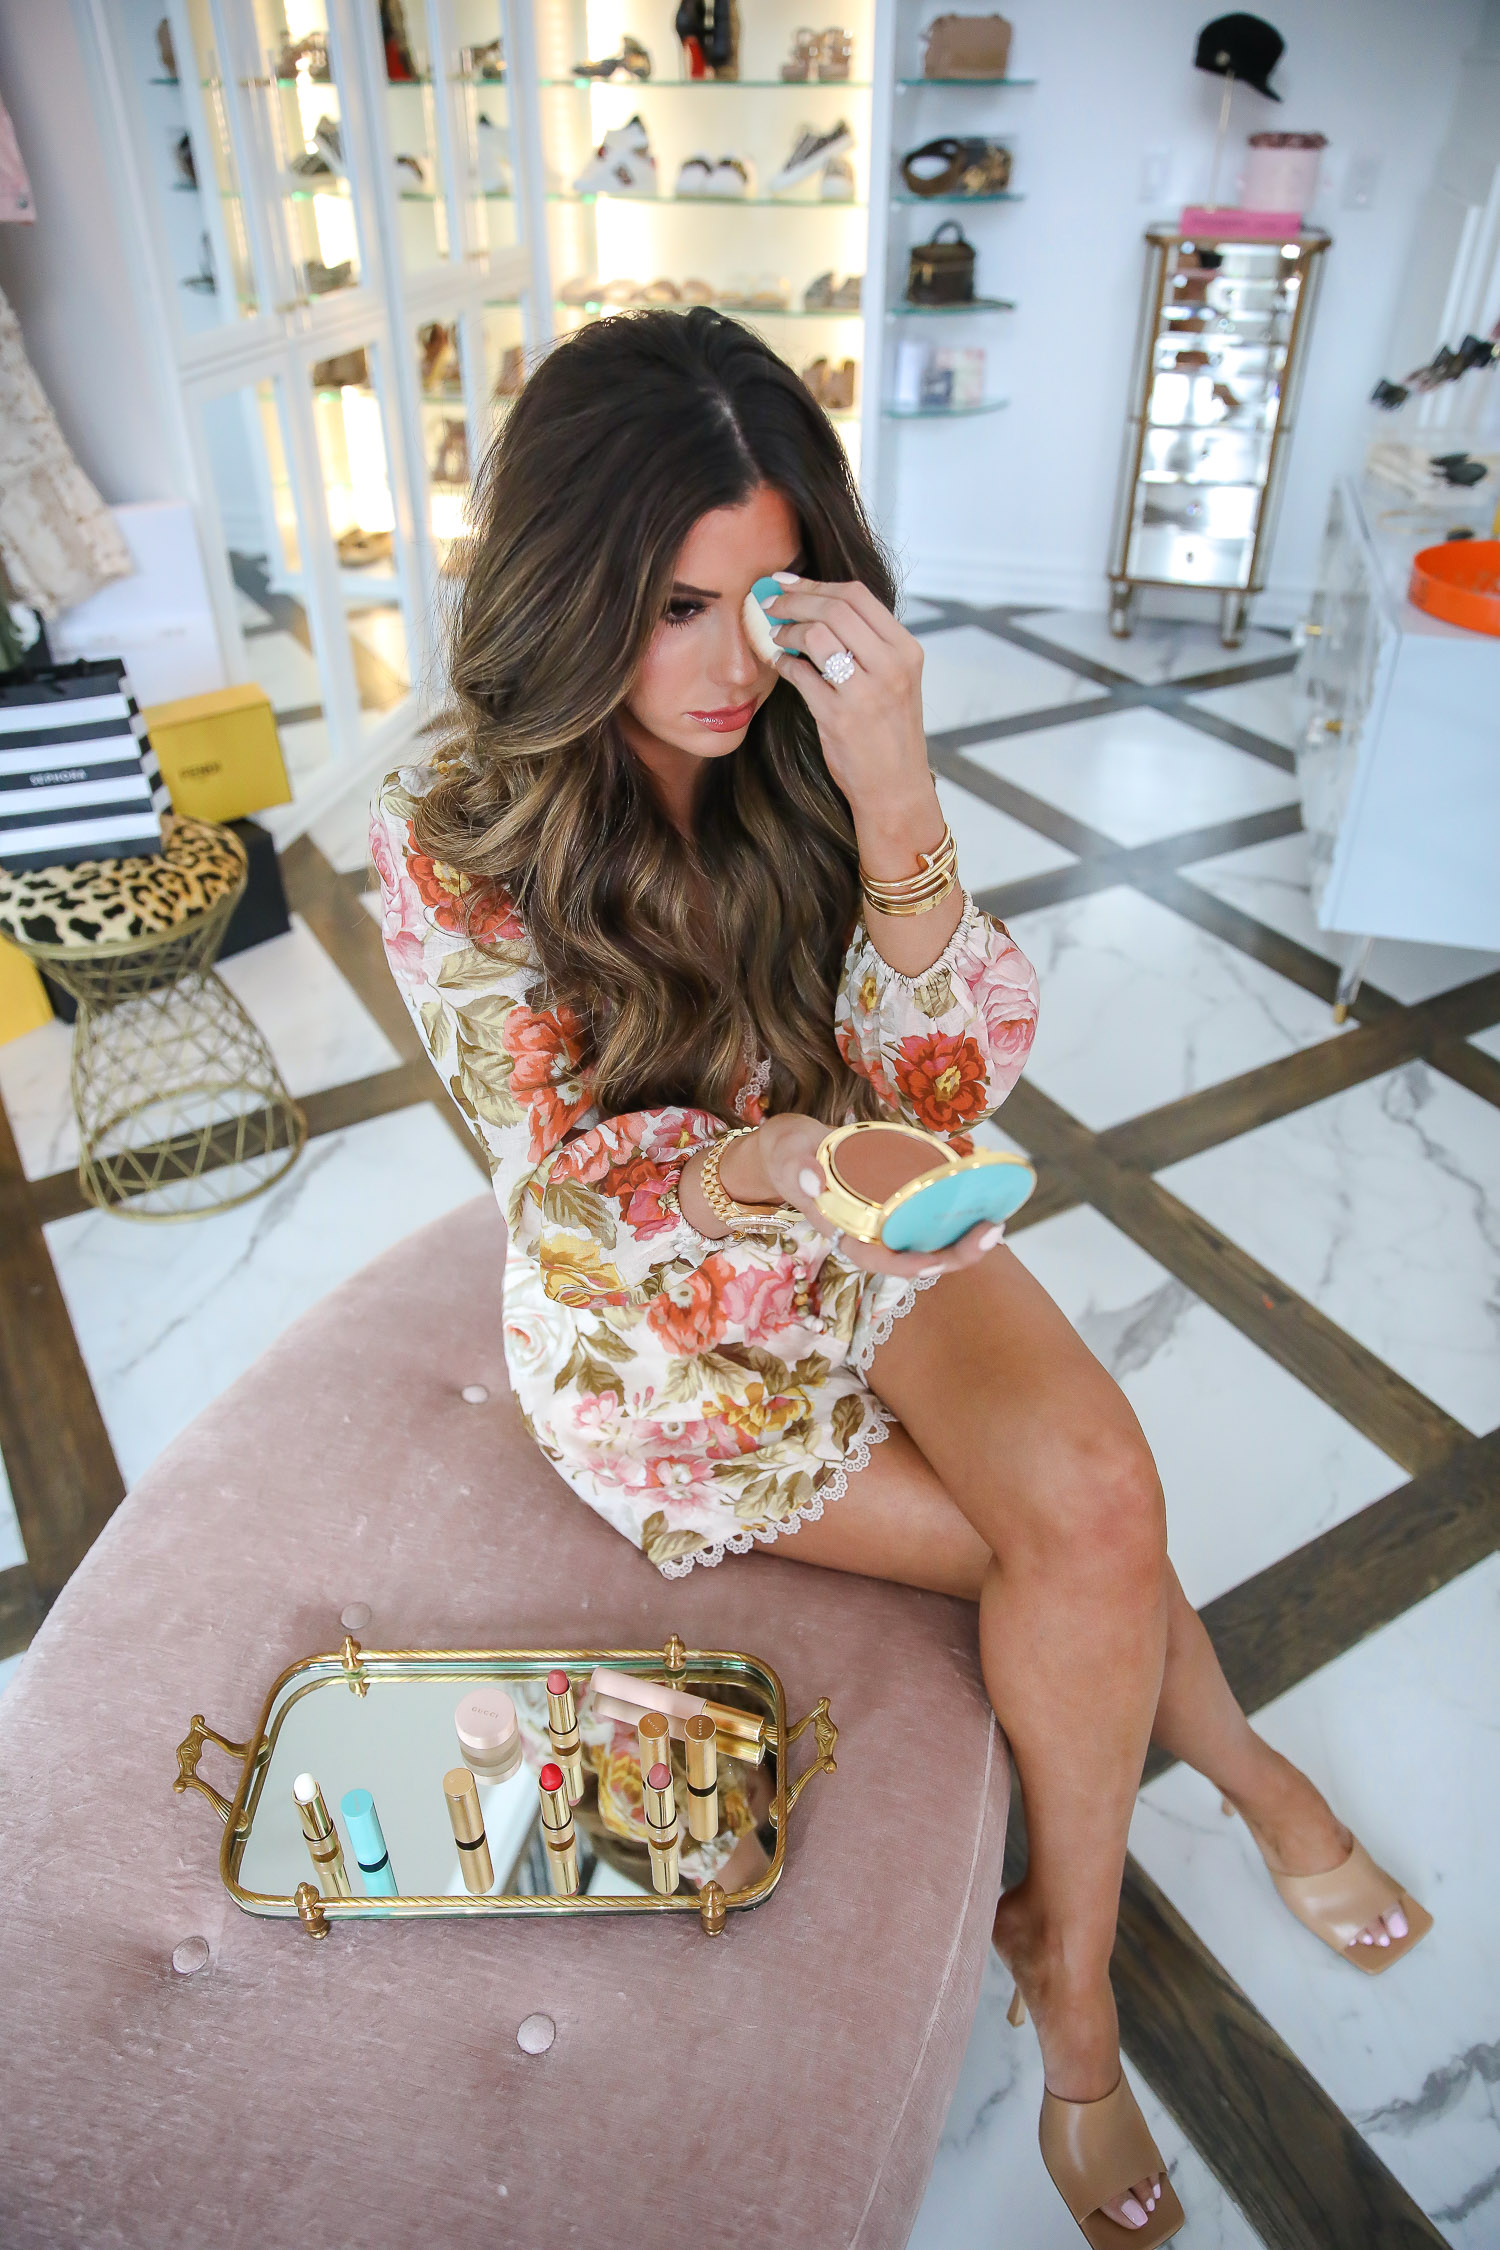 Gucci bronzer review by popular US beauty blog, The Sweetest Thing: image of Emily Gemma wearing a floral romper and sitting on a tuft velvet ottoman while applying Gucci Poudre De Beauté Éclat Soleil Bronzing Powder.